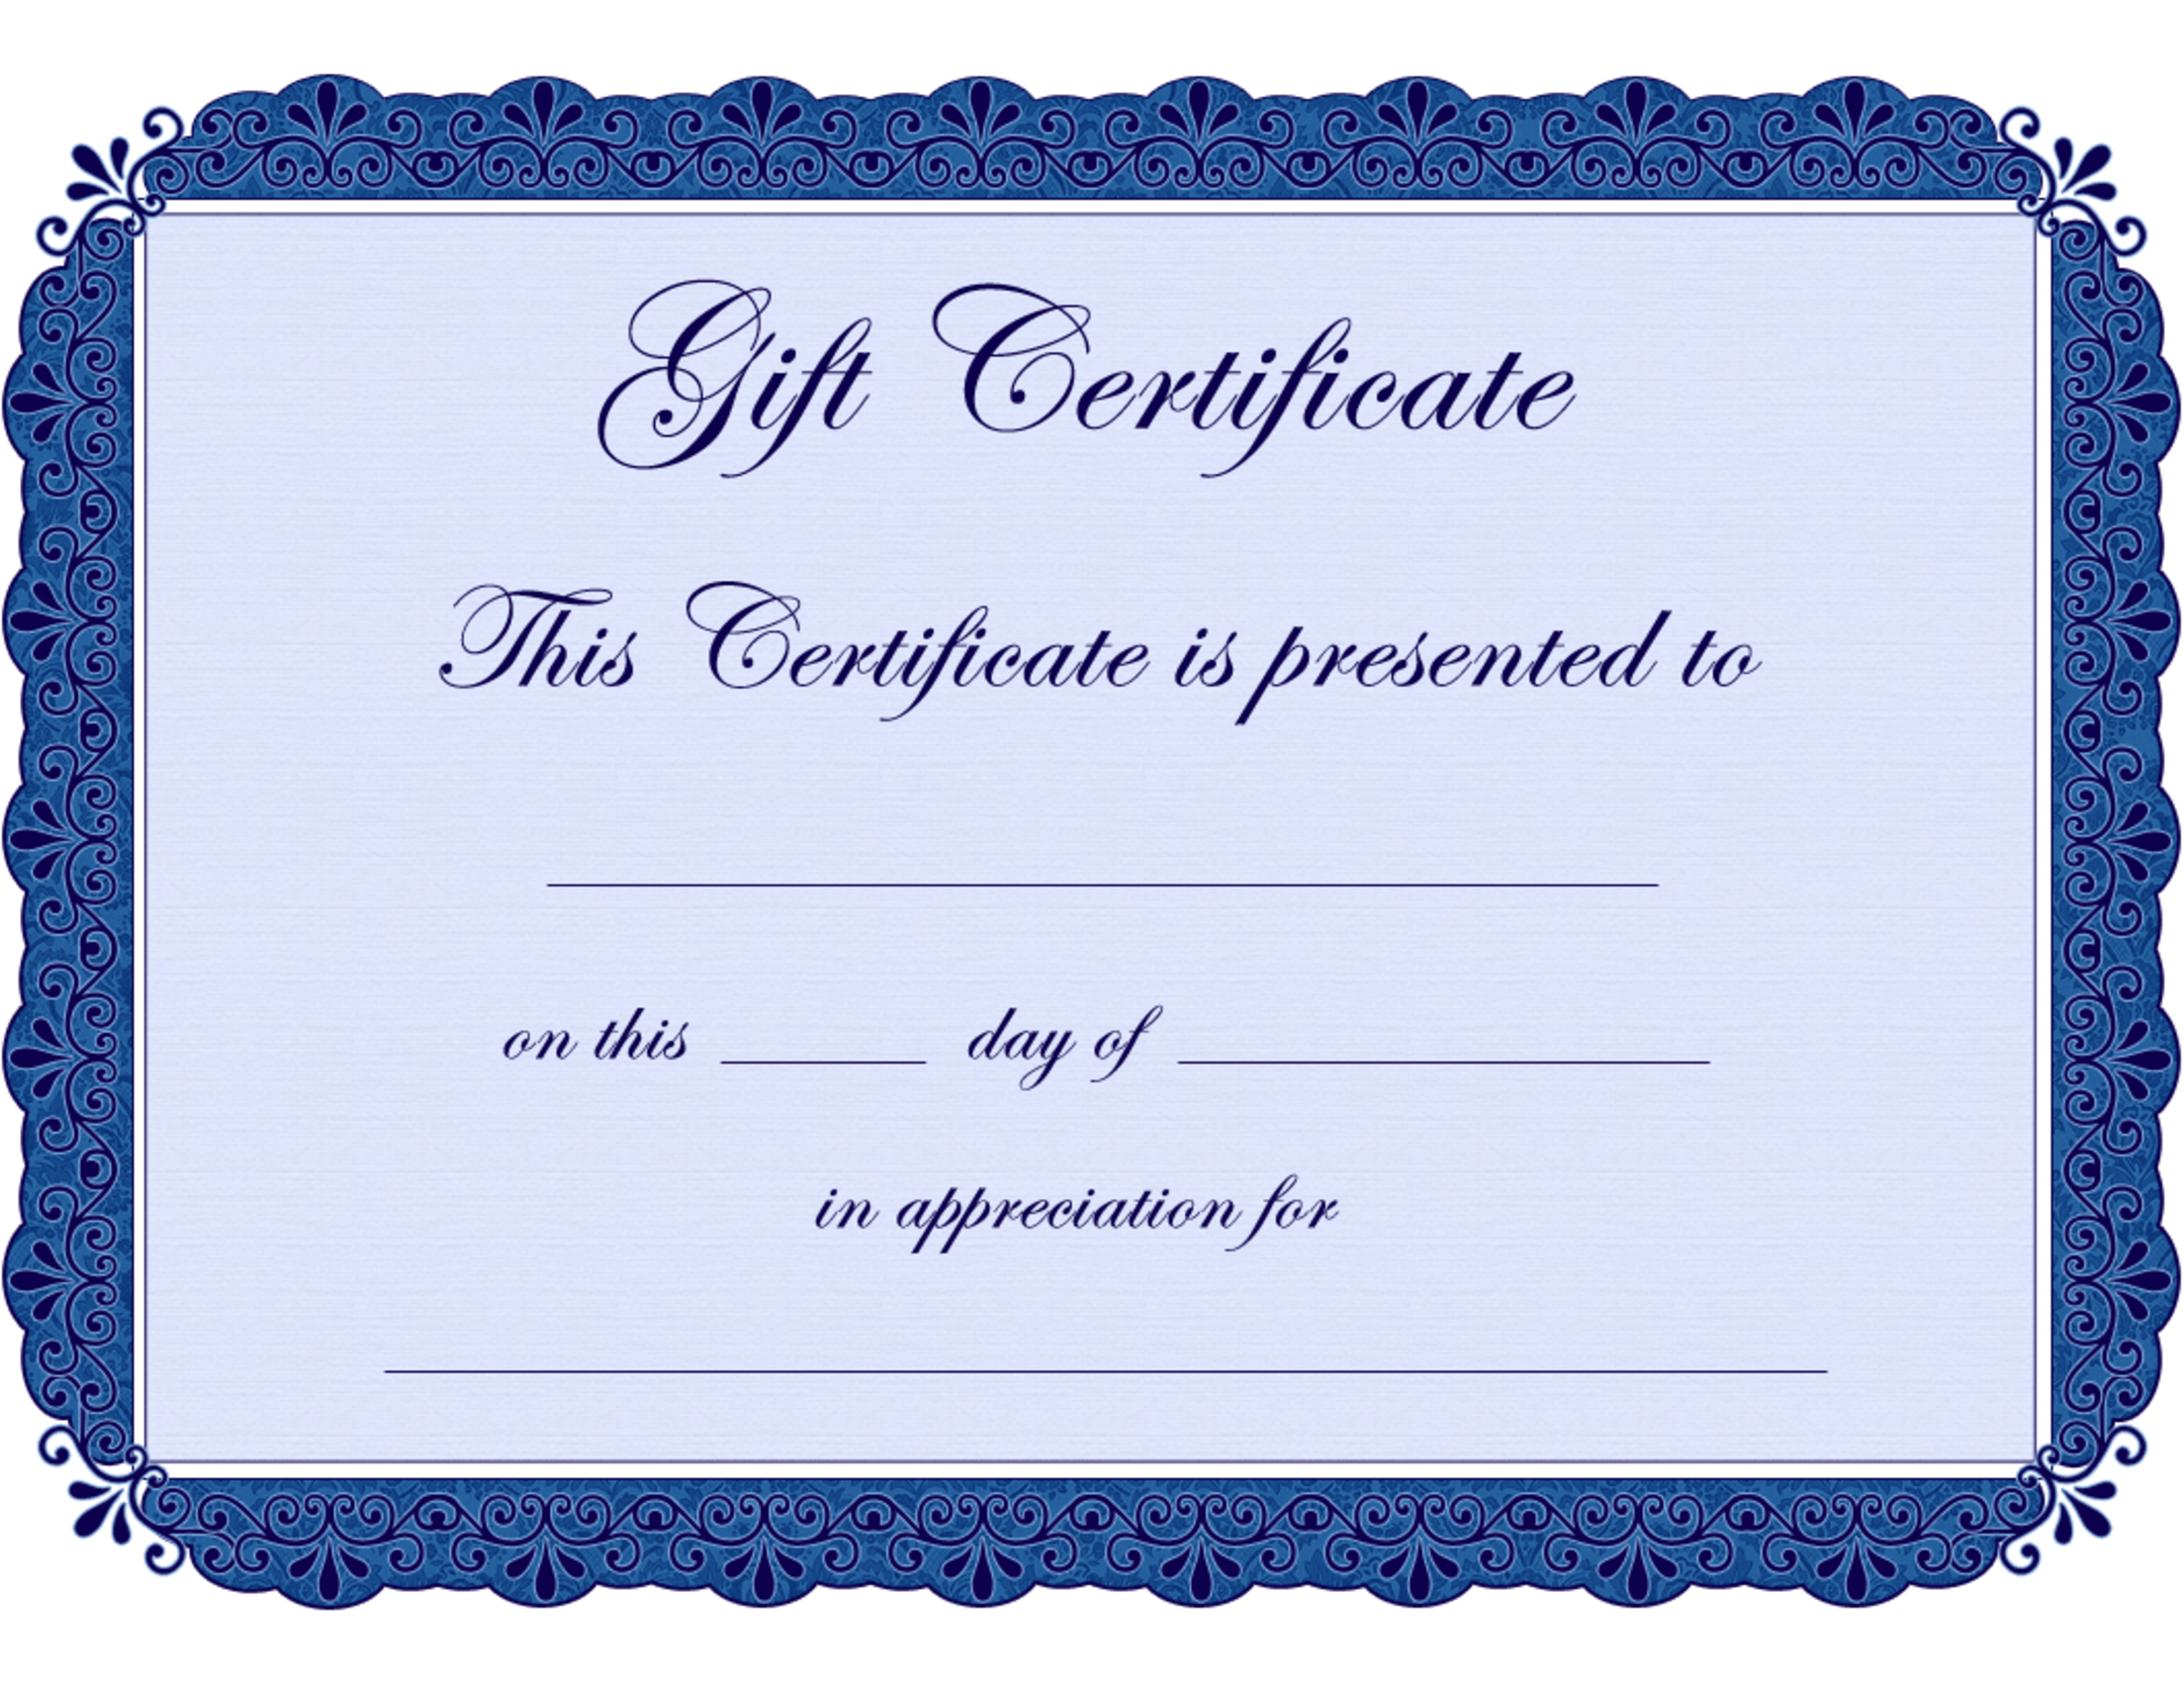 birthday gift certificate clipart clipart kid 48 certificate borders for word cliparts that you can